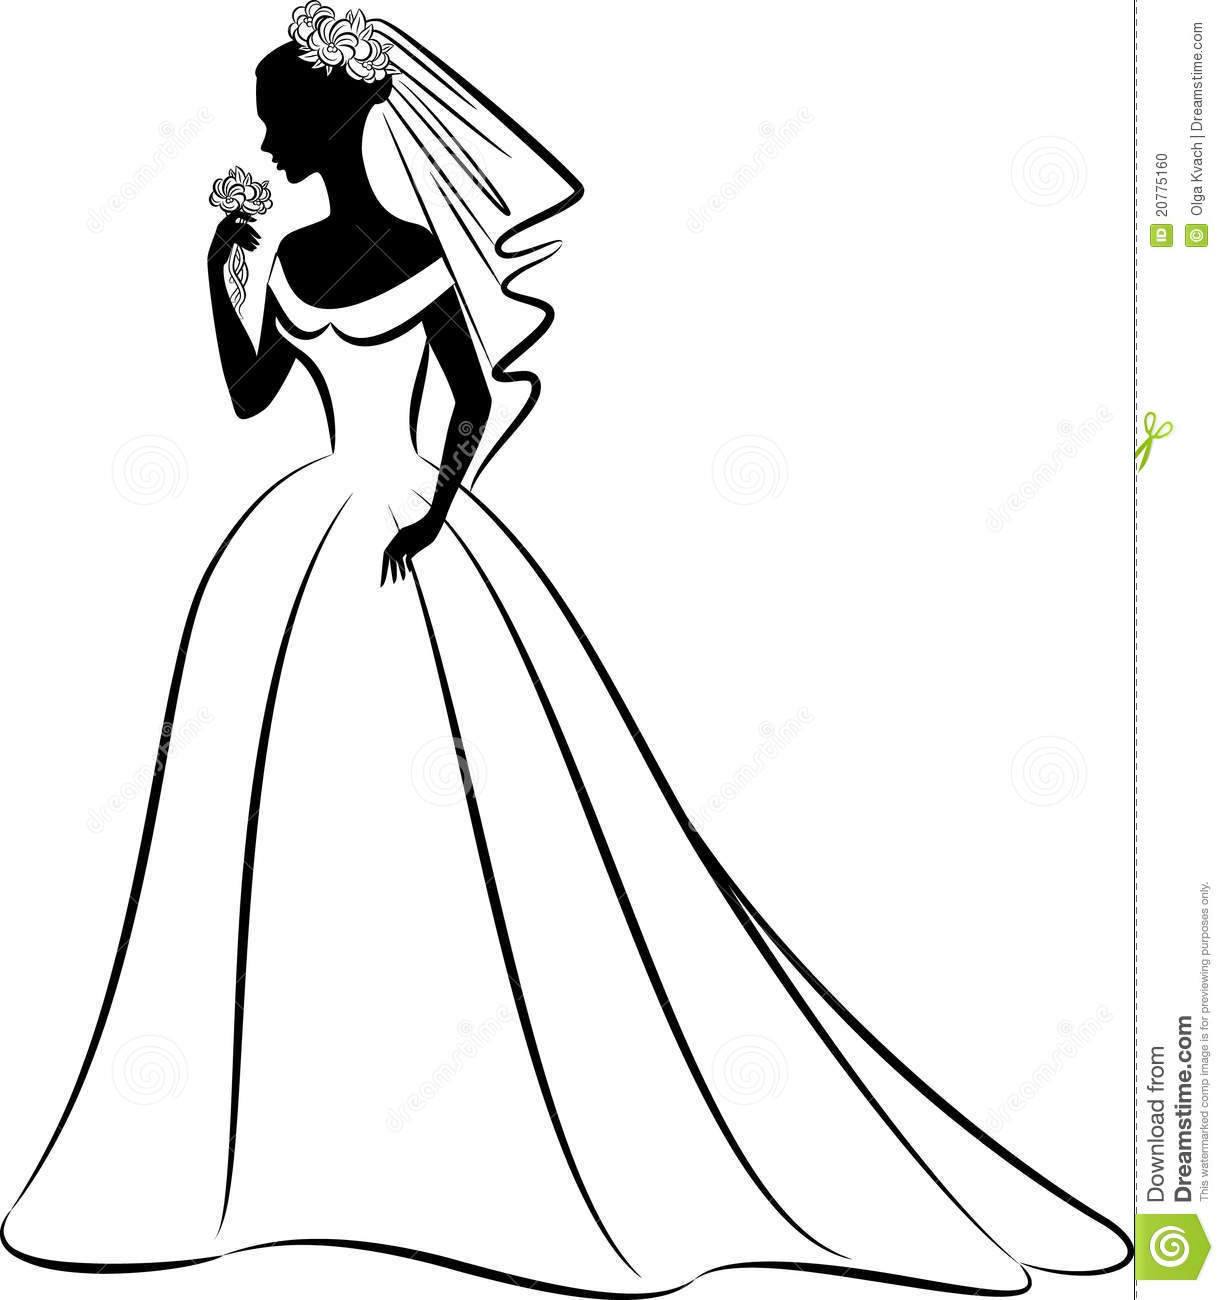 wedding party silhouette template free at getdrawings com free for rh getdrawings com bridal clip art free images bridal clipart free